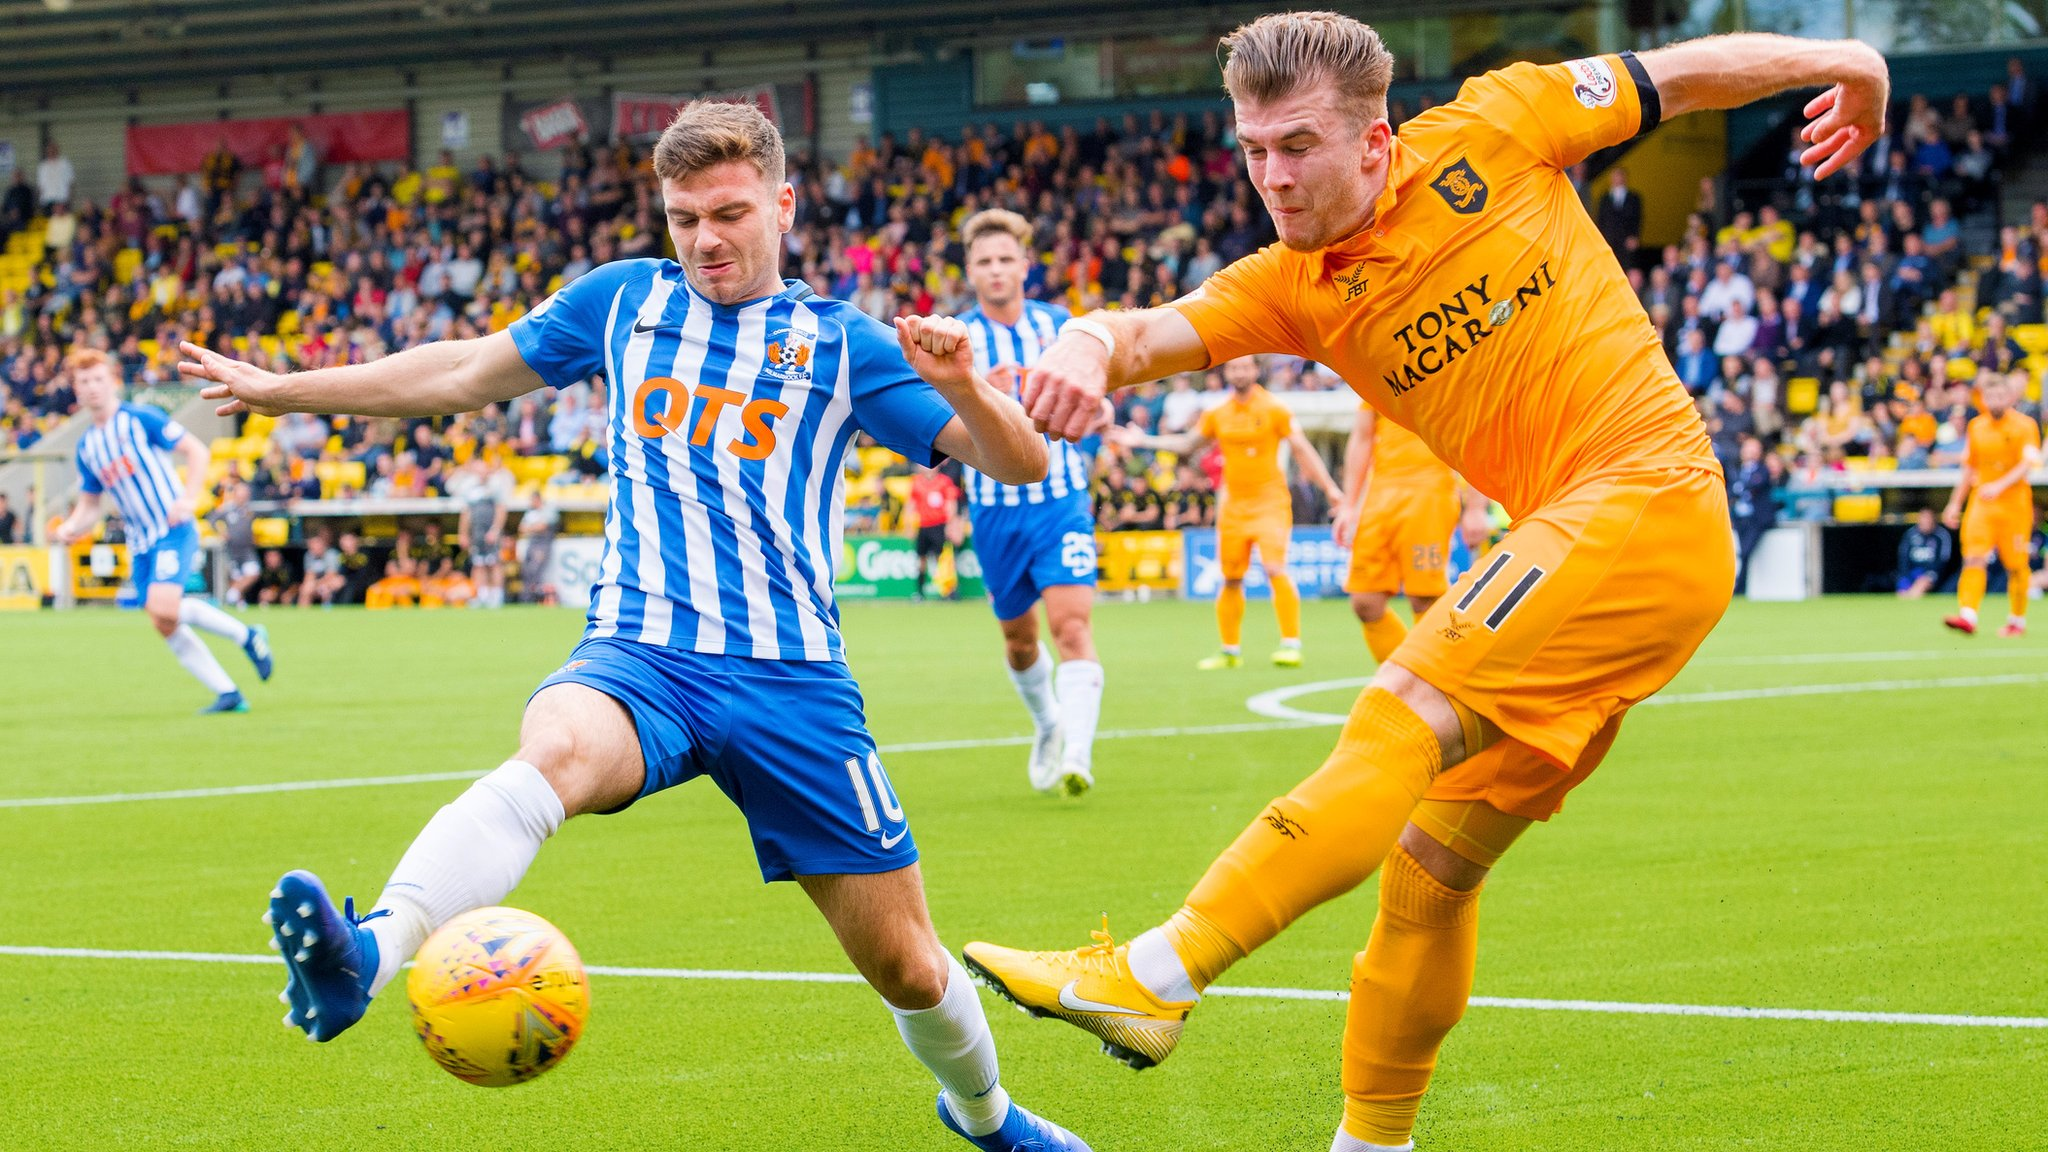 Livingston need experience to stay up after Kenny Miller exit, says Preston